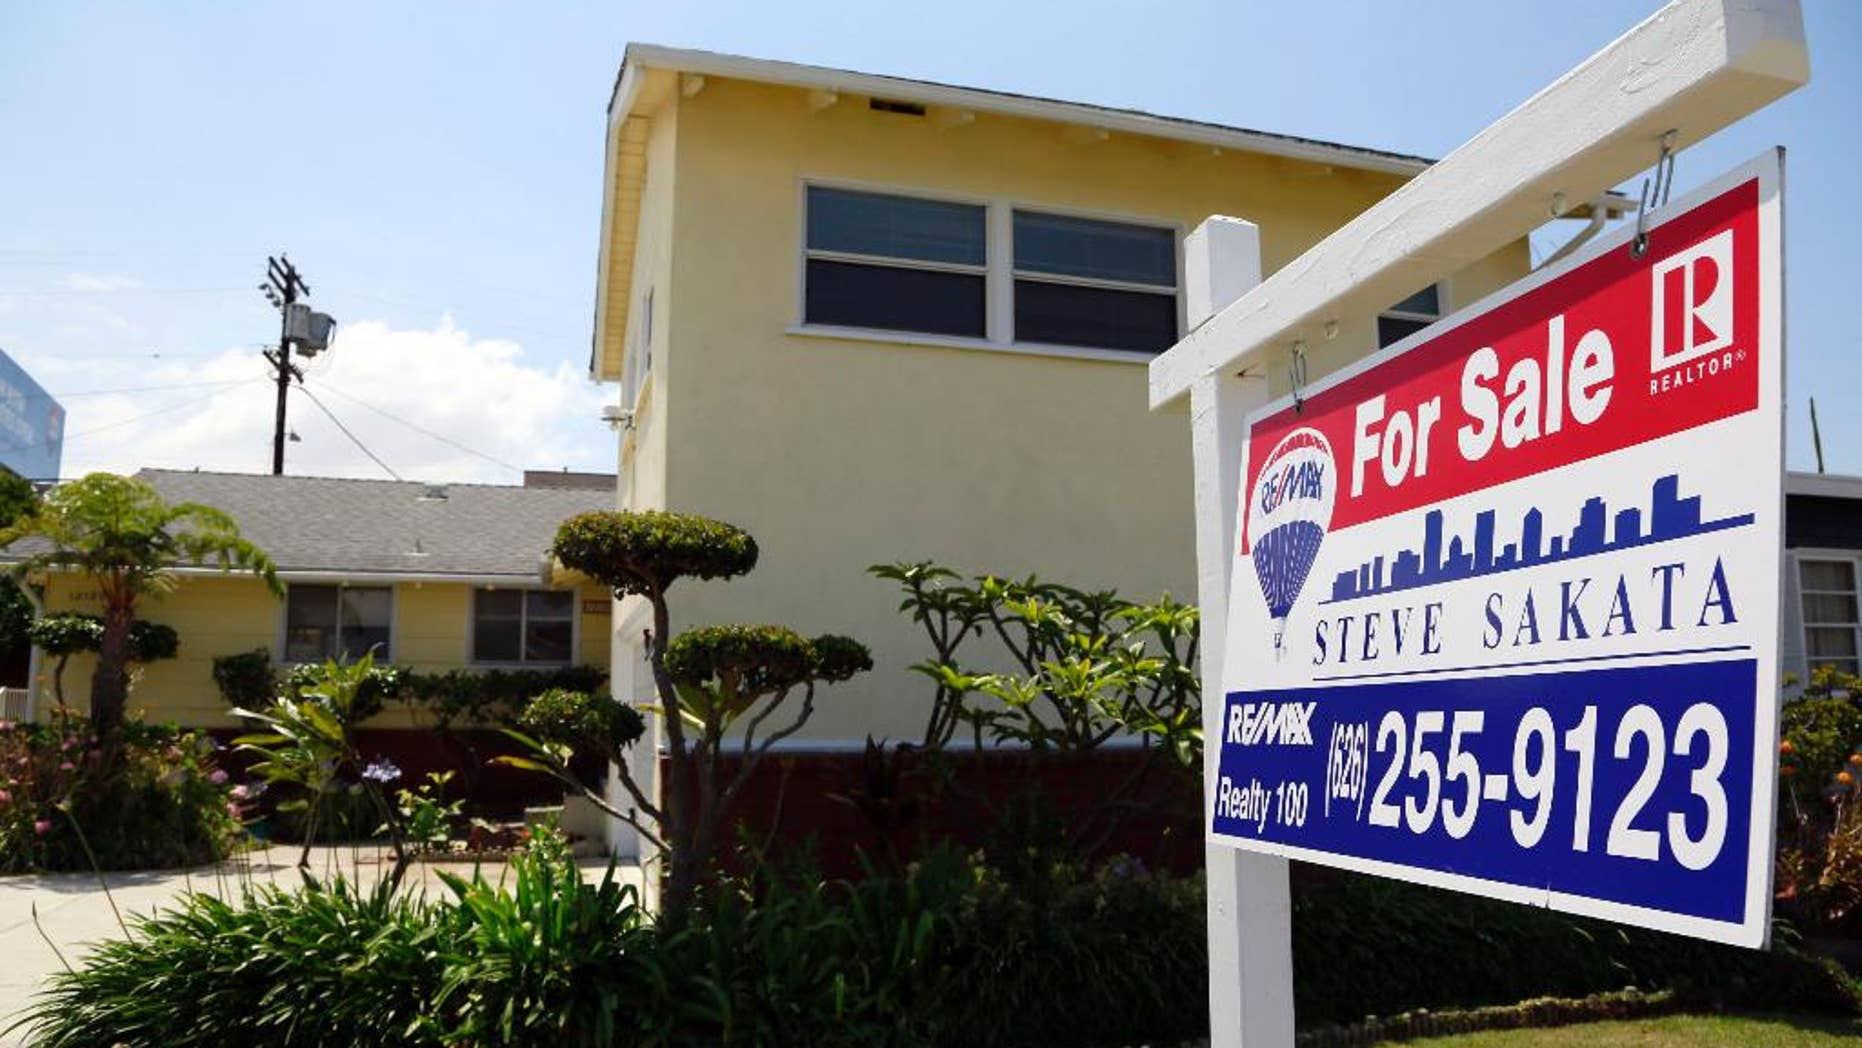 This Thursday, May 21, 2015 photo shows a house for sale in Culver City, Calif. Freddie Mac reports on average U.S. mortgage rates on Thursday, May 28, 2015. (AP Photo/Nick Ut)